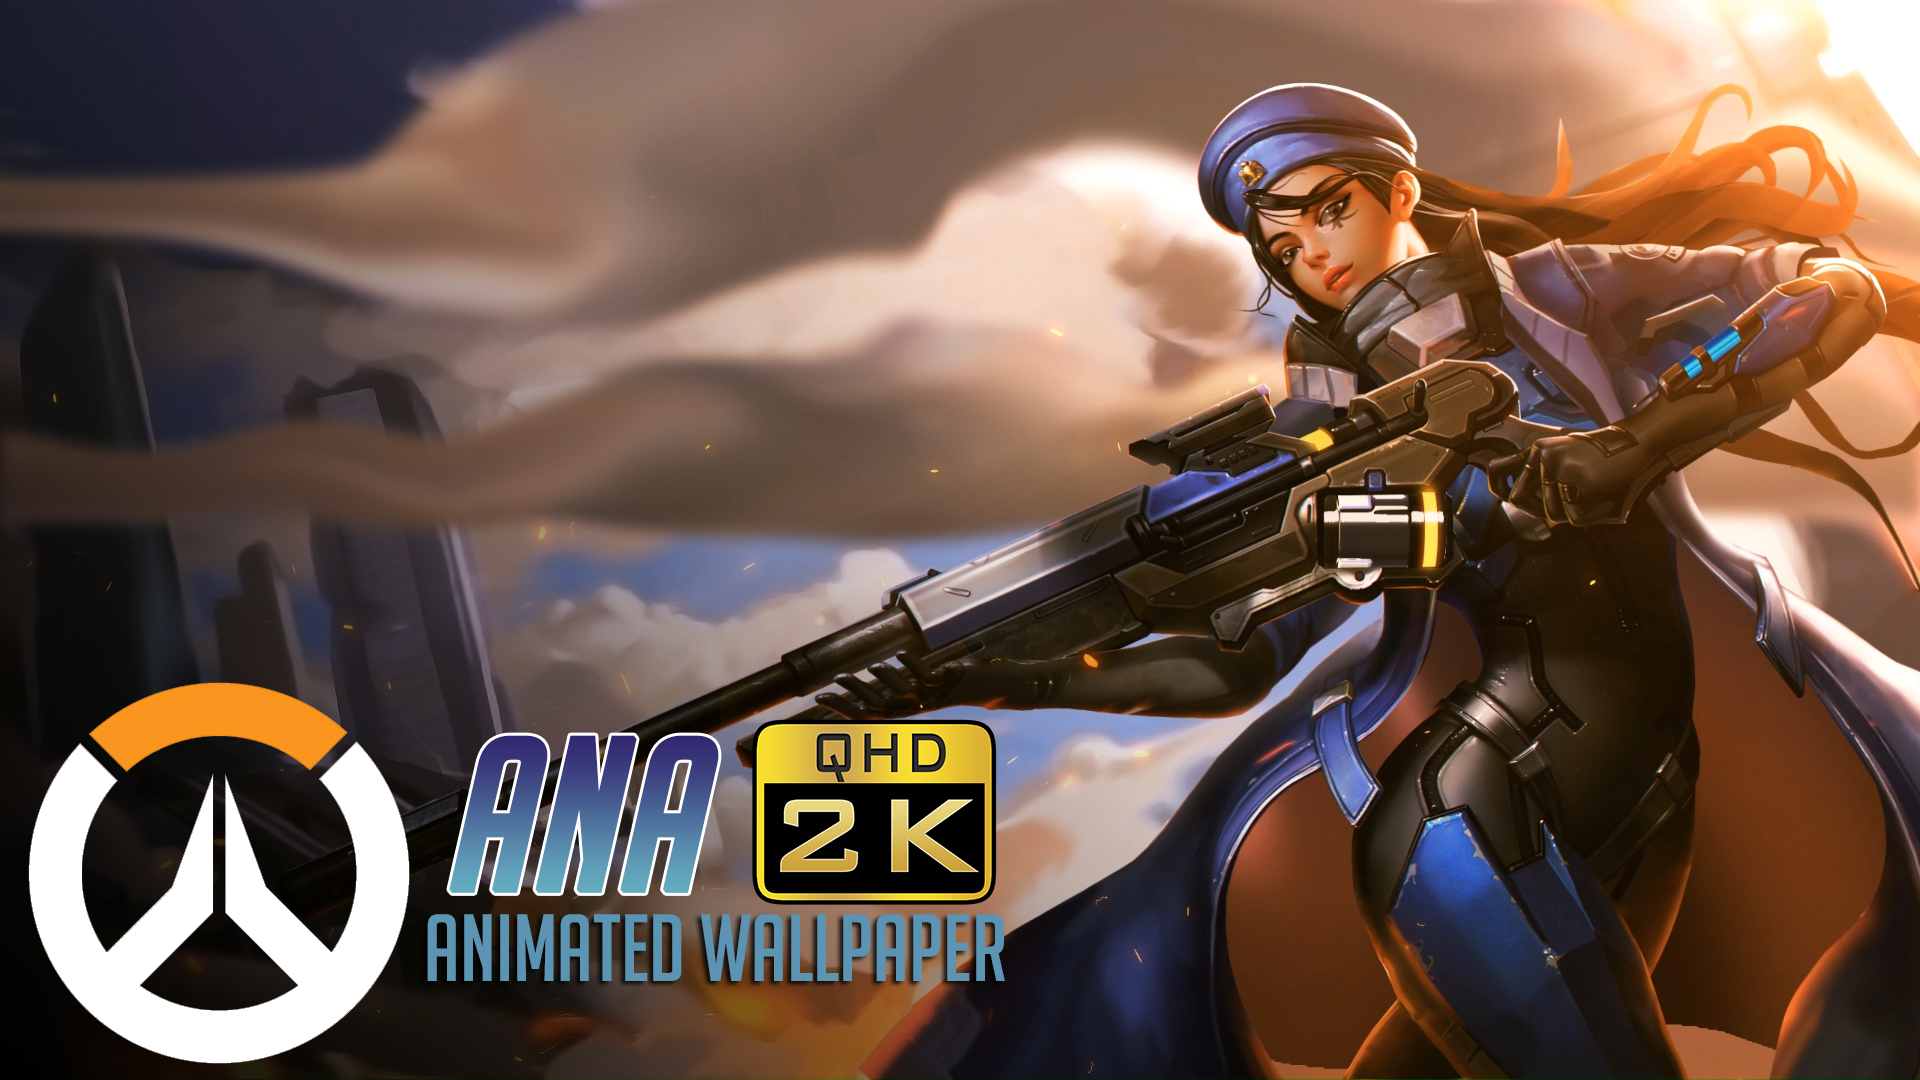 Wallpaper Engine - Ana | Animated Wallpaper QHD 1440p - Overwatch